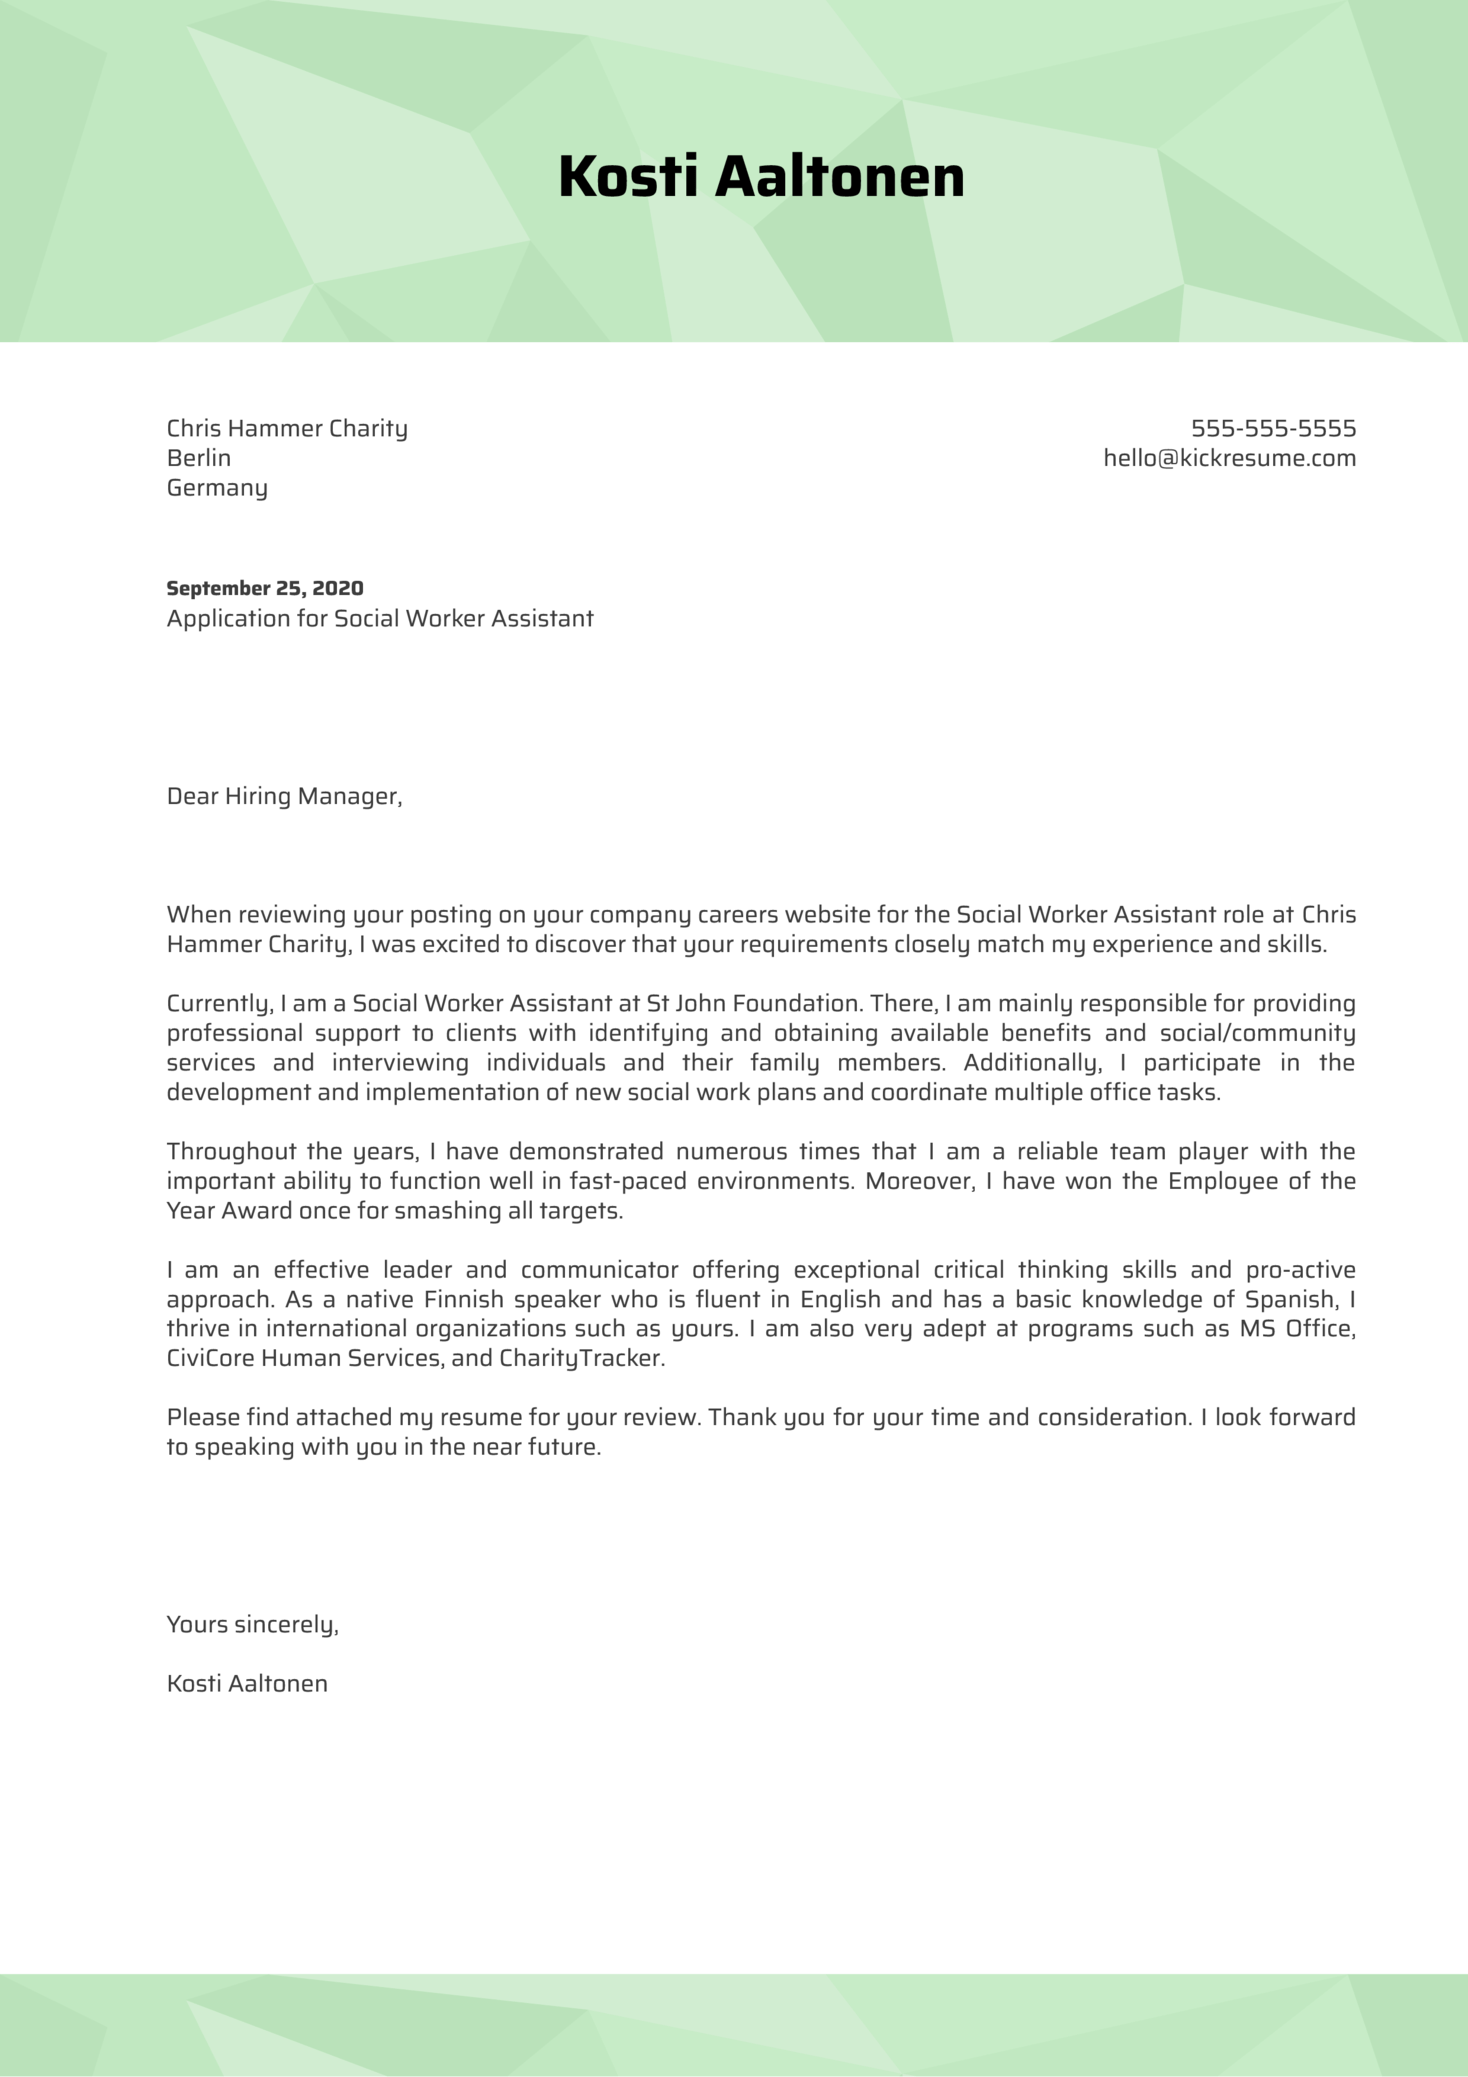 Social Work Sample Cover Letter from s3-eu-west-1.amazonaws.com